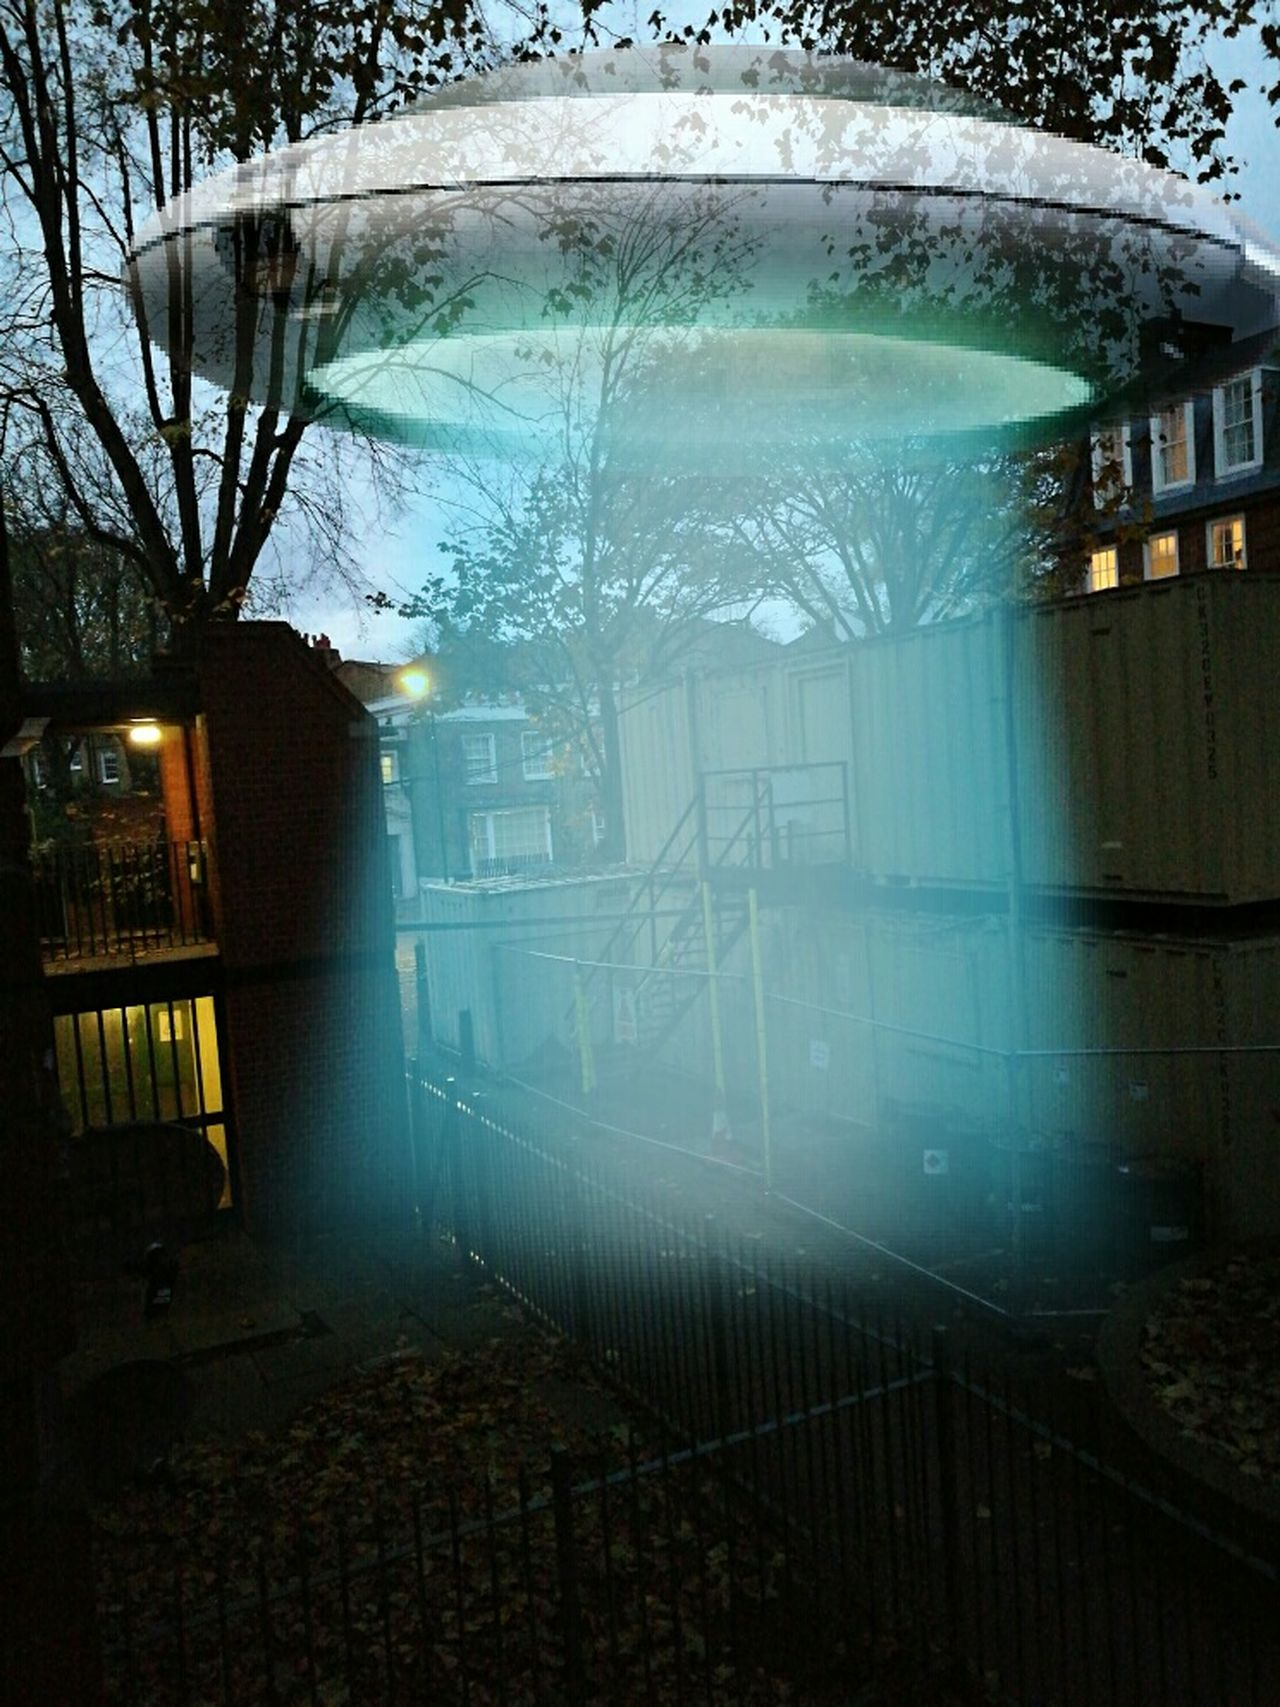 UFO Taking Photos Enjoying Life Life Tranquility LONDON❤ At Home Fantasy Dreaming Alien Invasion Alien Tree Reflection Water No People Day Outdoors Architecture Petrochemical Plant